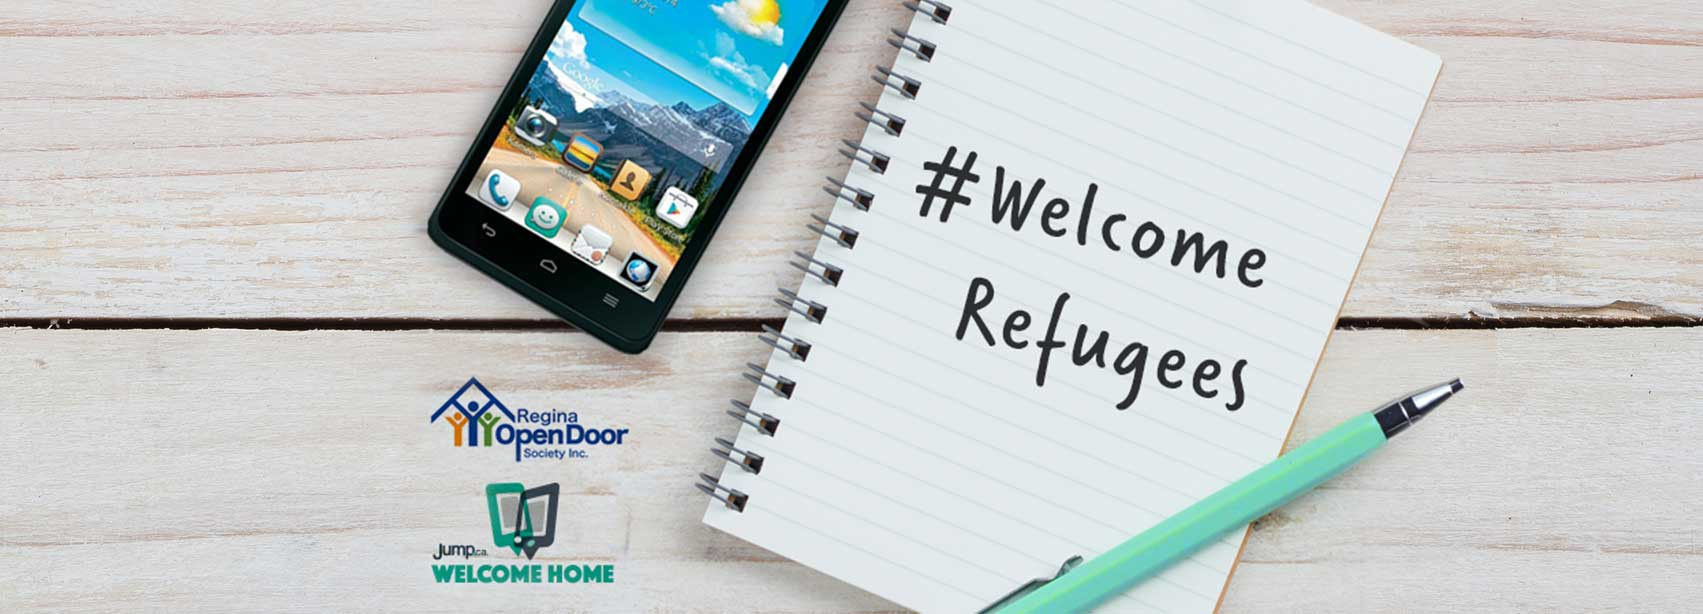 Welcome Home program to provide smartphones to Syrian refugee families